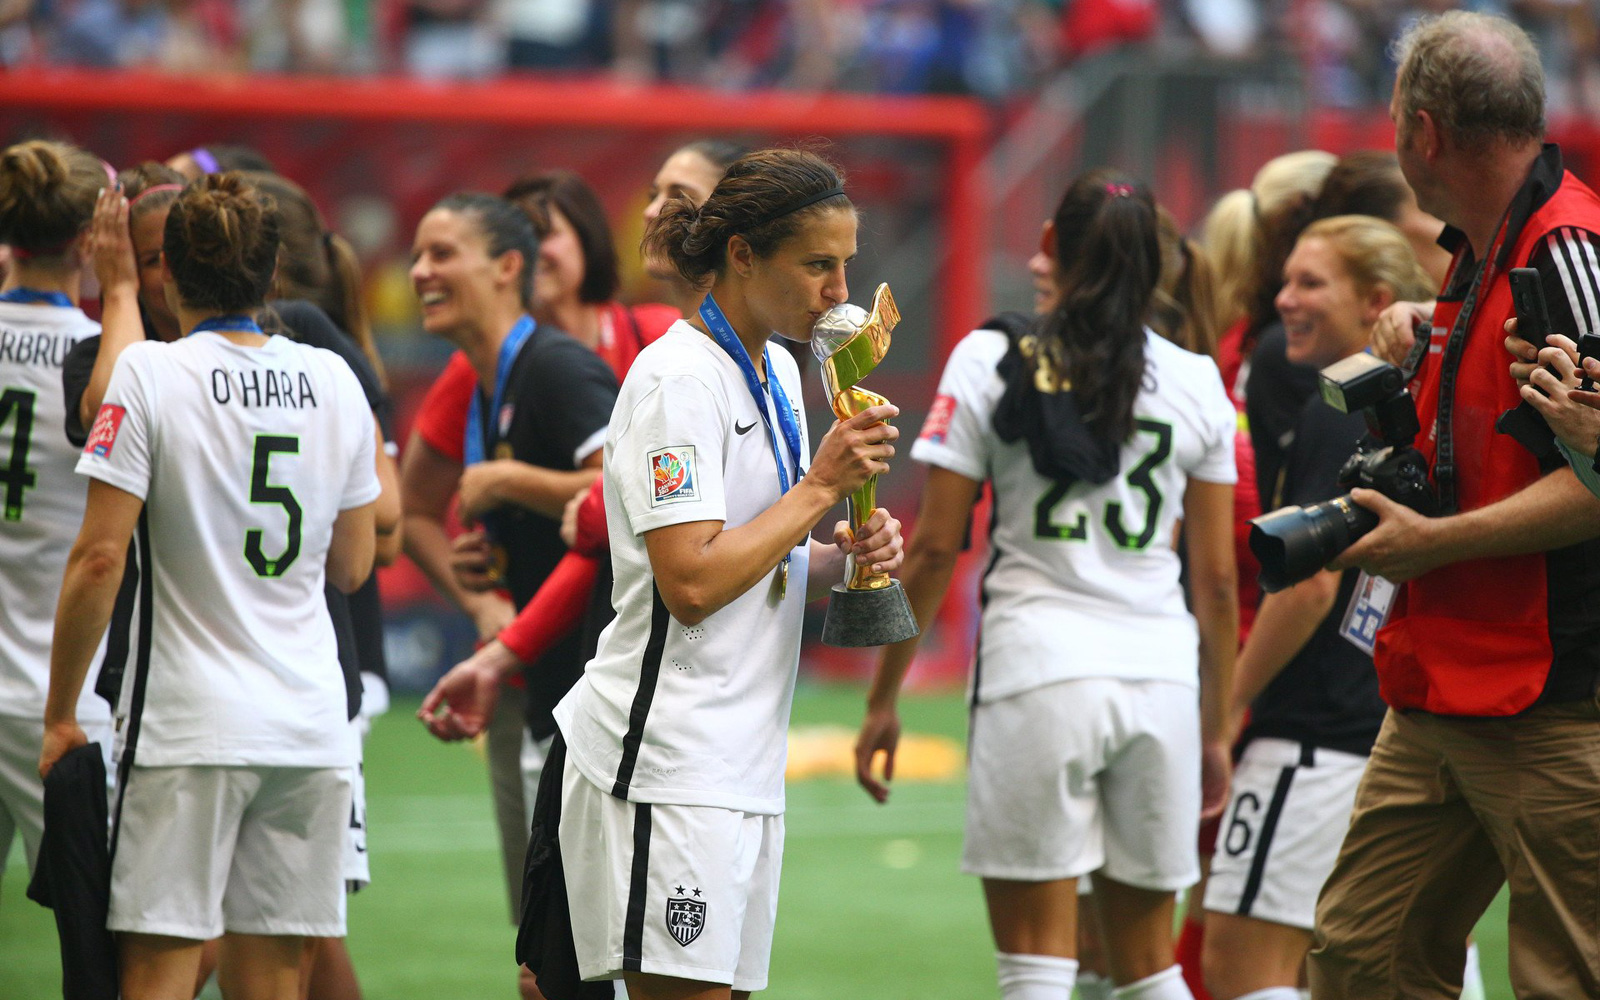 Carli Lloyd kisses the World Cup trophy after the USA's 5-2 win over Japan in the final